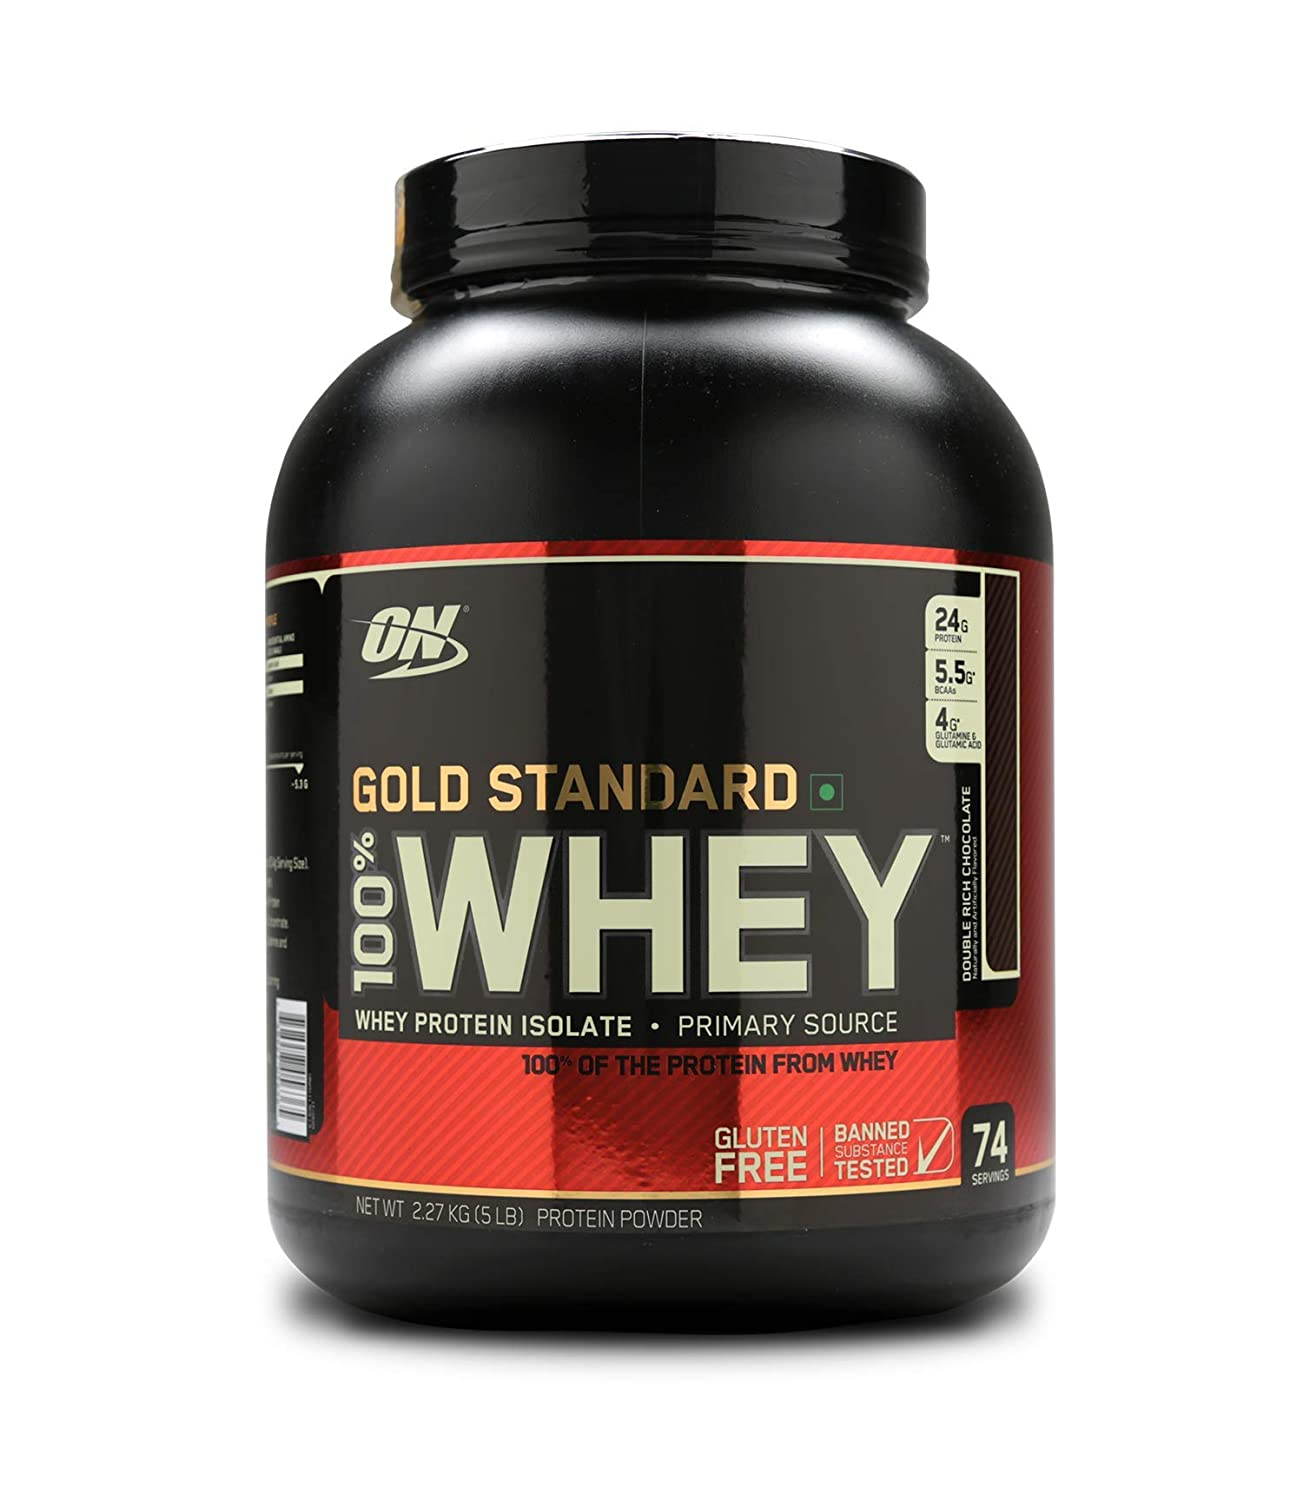 c486dae16 Optimum Nutrition (ON) Gold Standard 100% Whey Protein Powder - 5 ...